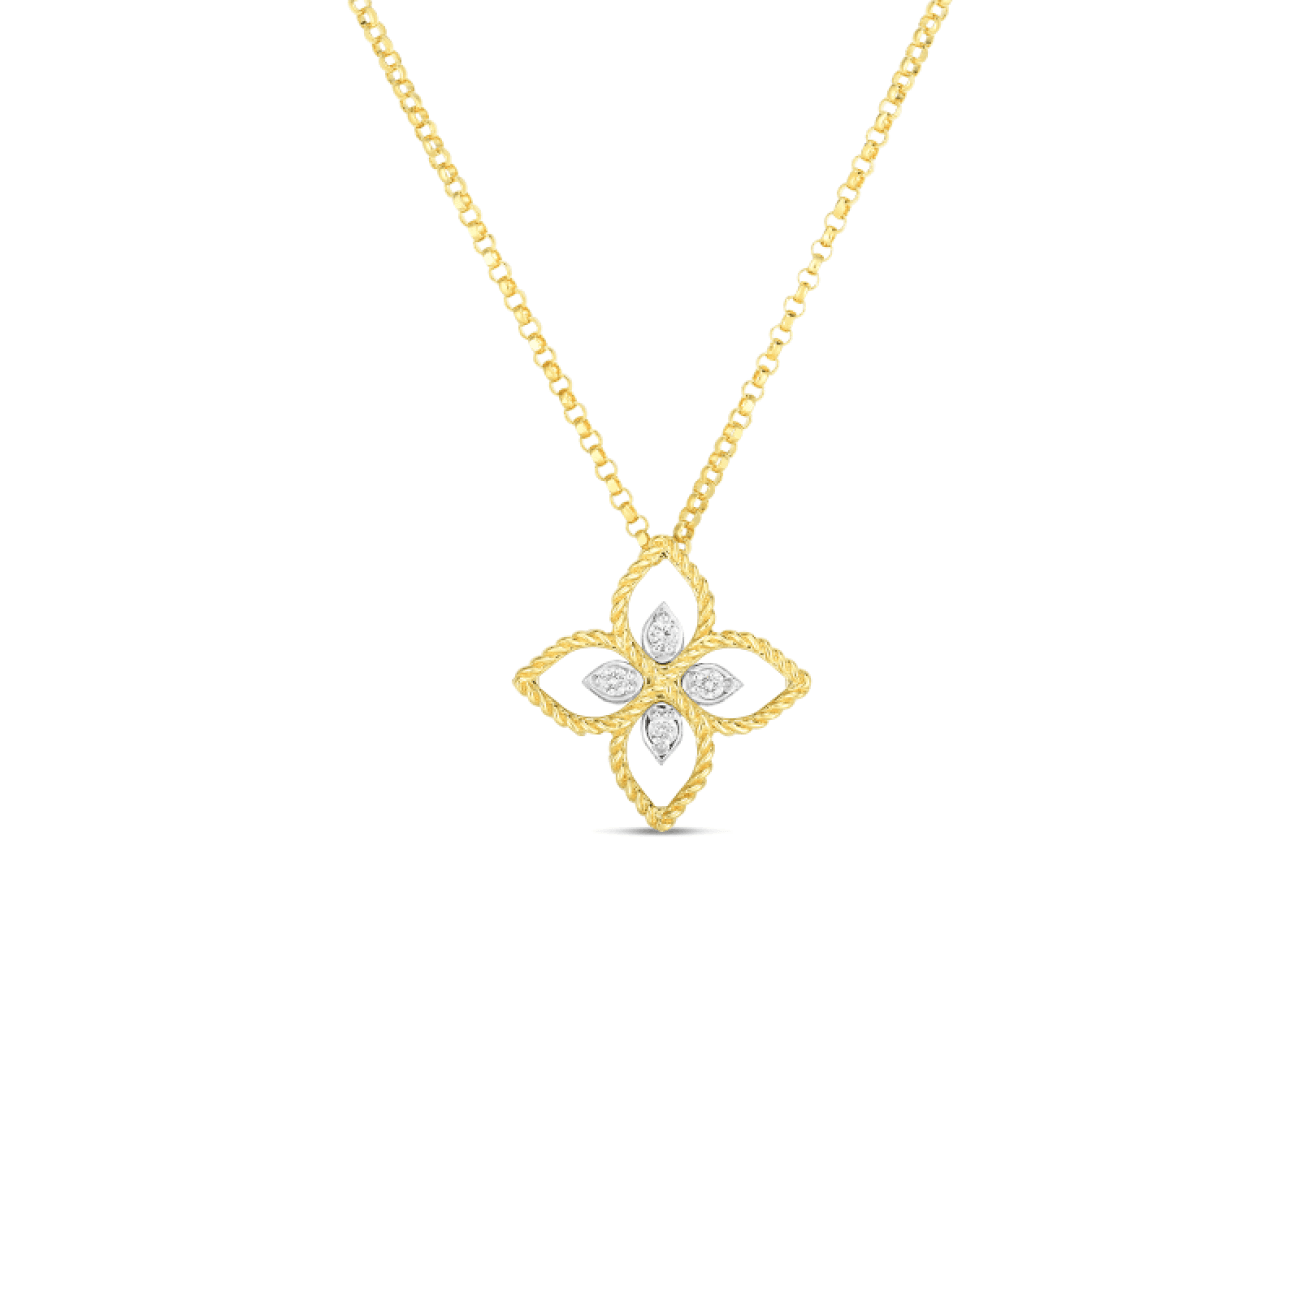 Roberto Coin Jewelry - 18k Principessa Small Flower Pendant W. Diamond 7772717aj17x | Manfredi Jewels